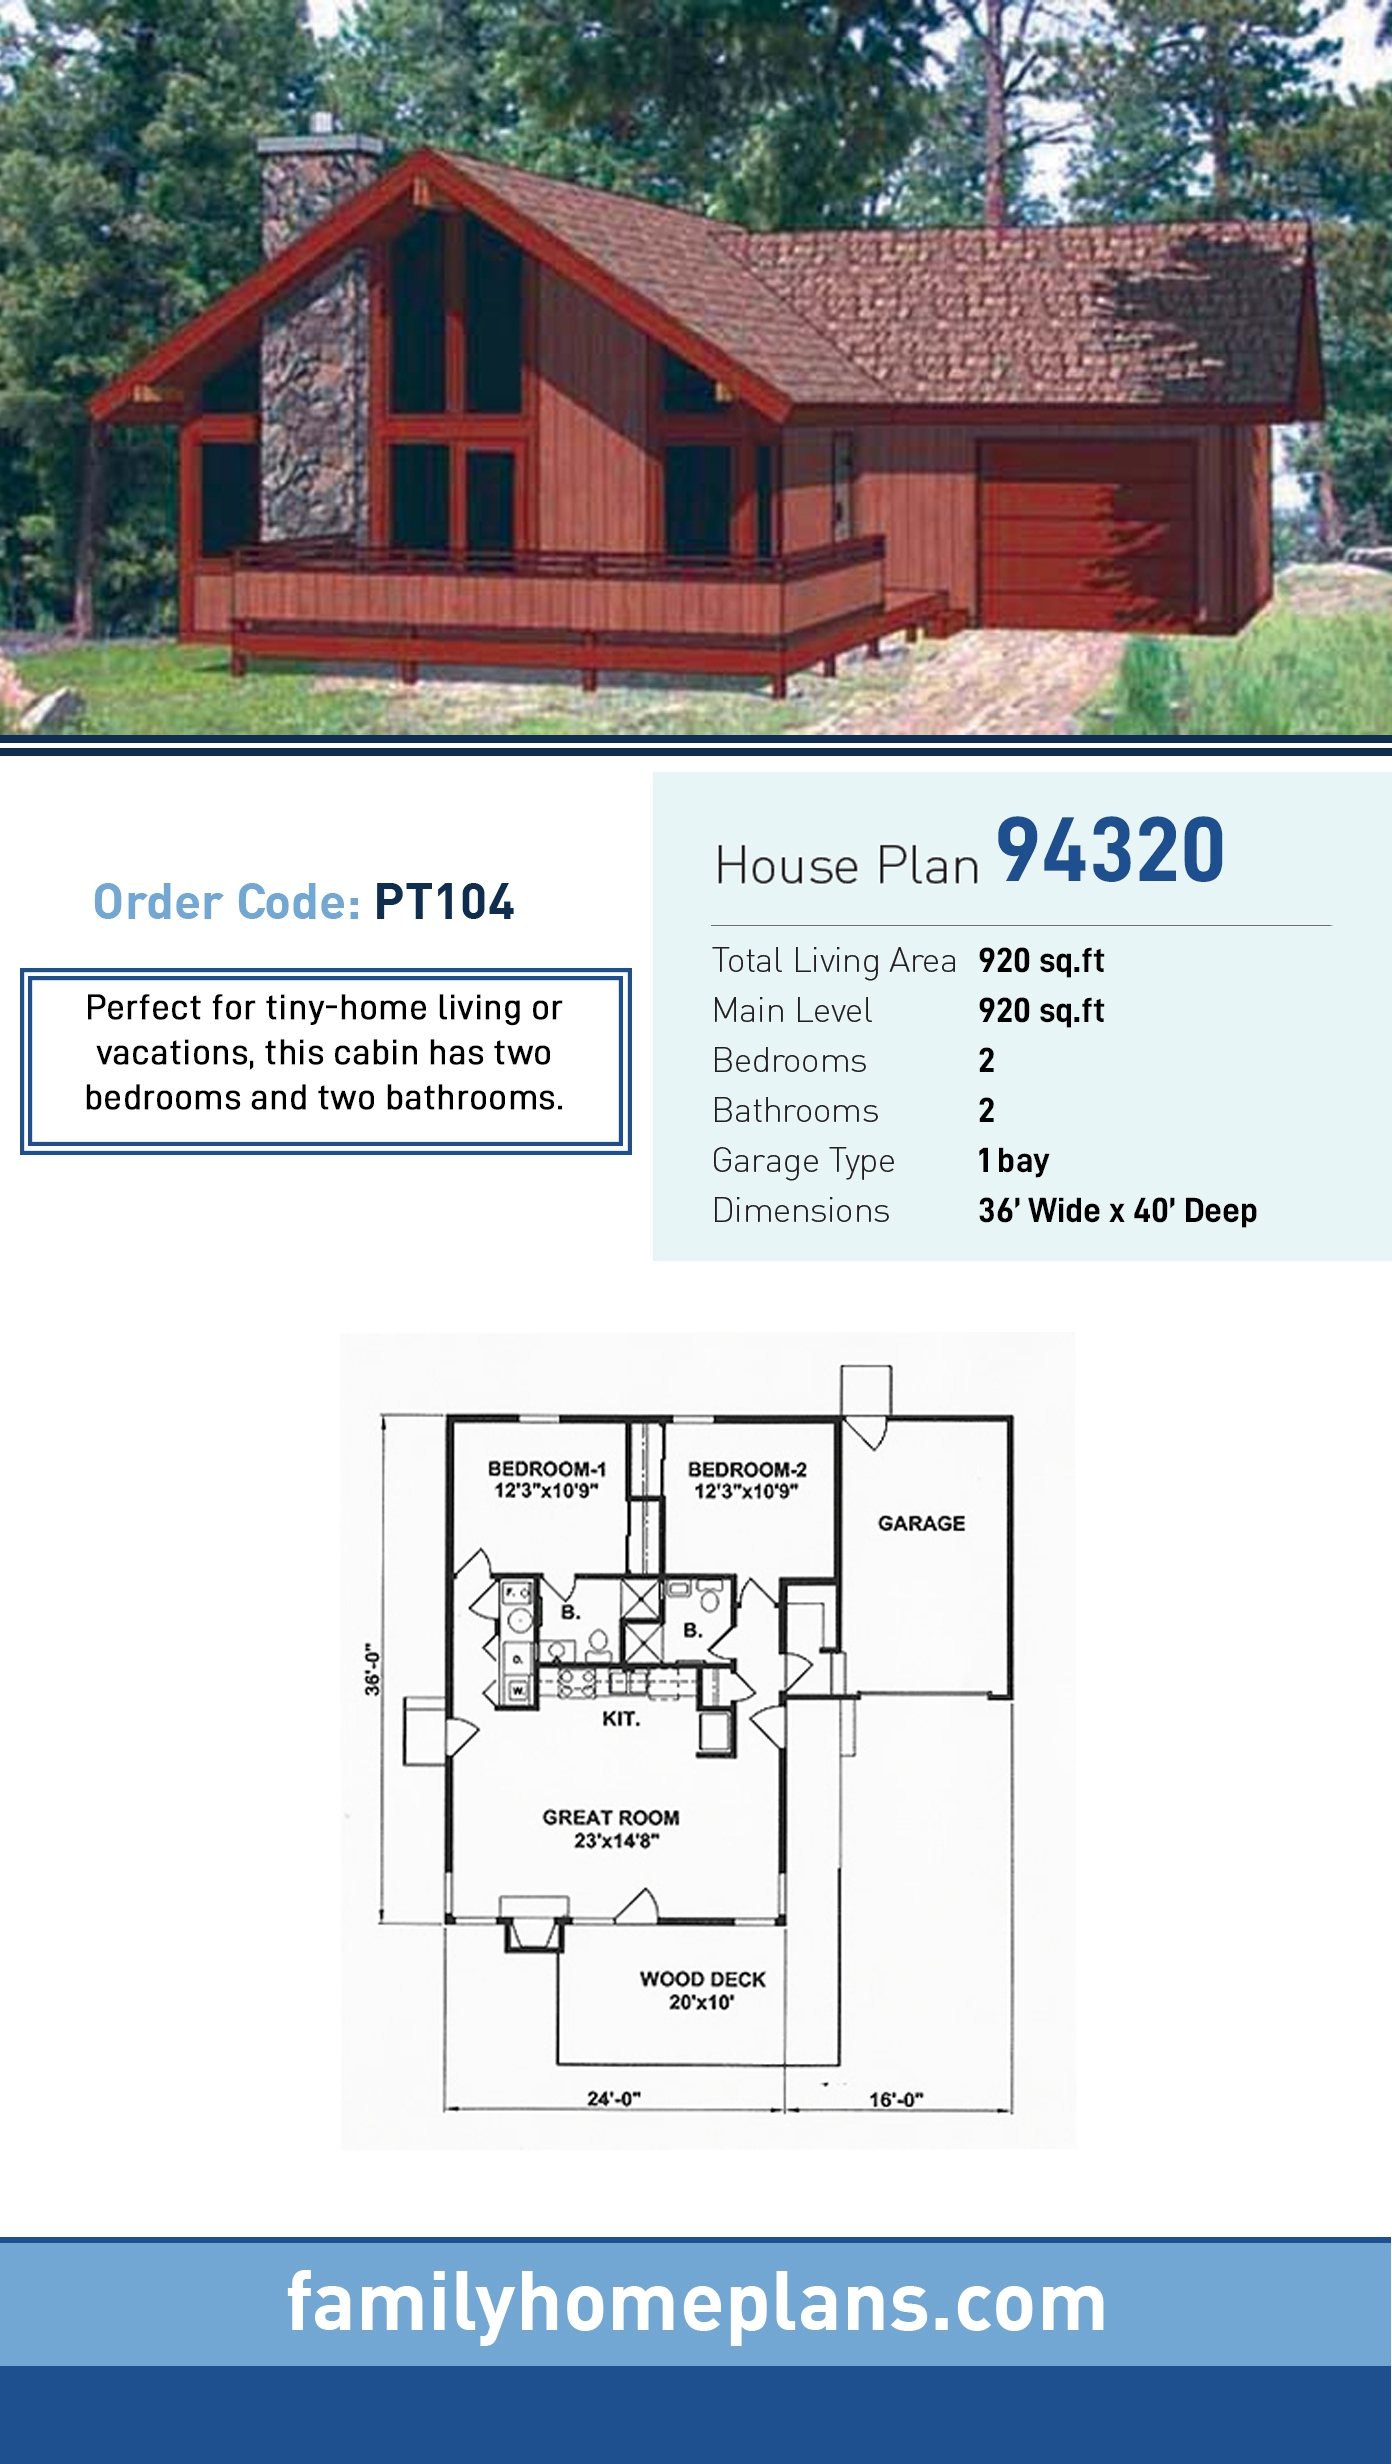 Cabin, Contemporary House Plan 94320 with 2 Beds, 2 Baths, 1 Car Garage